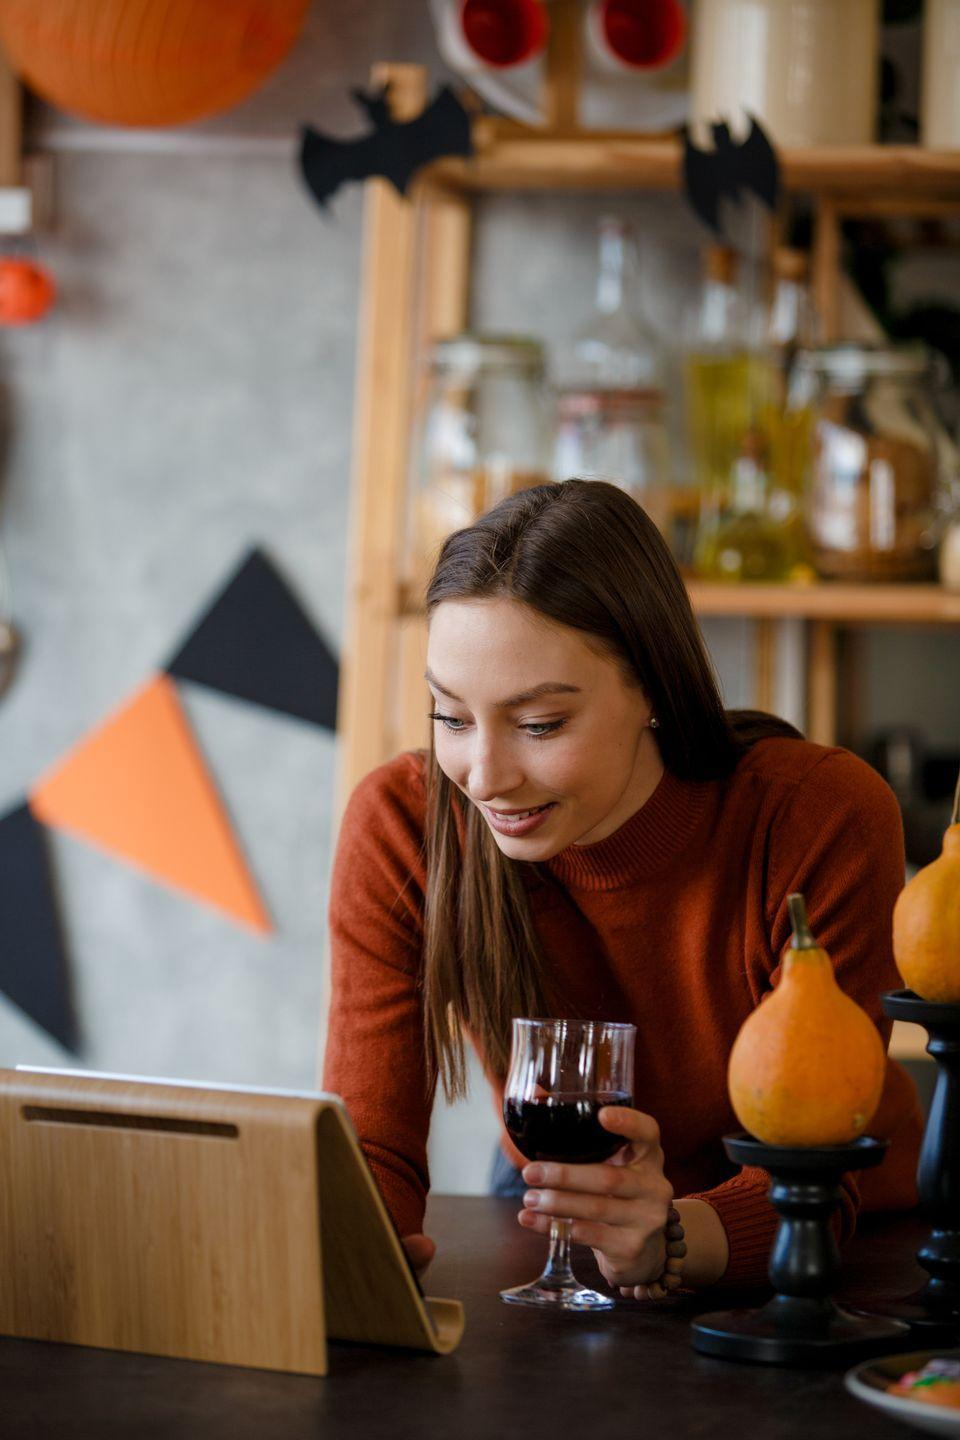 """<p>At this point in quarantine, we're all pros at hosting virtual get-togethers. Pour a drink, put on a costume, and invite all your friends to a Halloween FaceTime or Zoom party.</p><p><strong>RELATED:</strong> <a href=""""https://www.goodhousekeeping.com/life/entertainment/g32098665/best-games-to-play-on-zoom/"""" rel=""""nofollow noopener"""" target=""""_blank"""" data-ylk=""""slk:10 Fun Games to Play on Zoom"""" class=""""link rapid-noclick-resp"""">10 Fun Games to Play on Zoom</a></p>"""